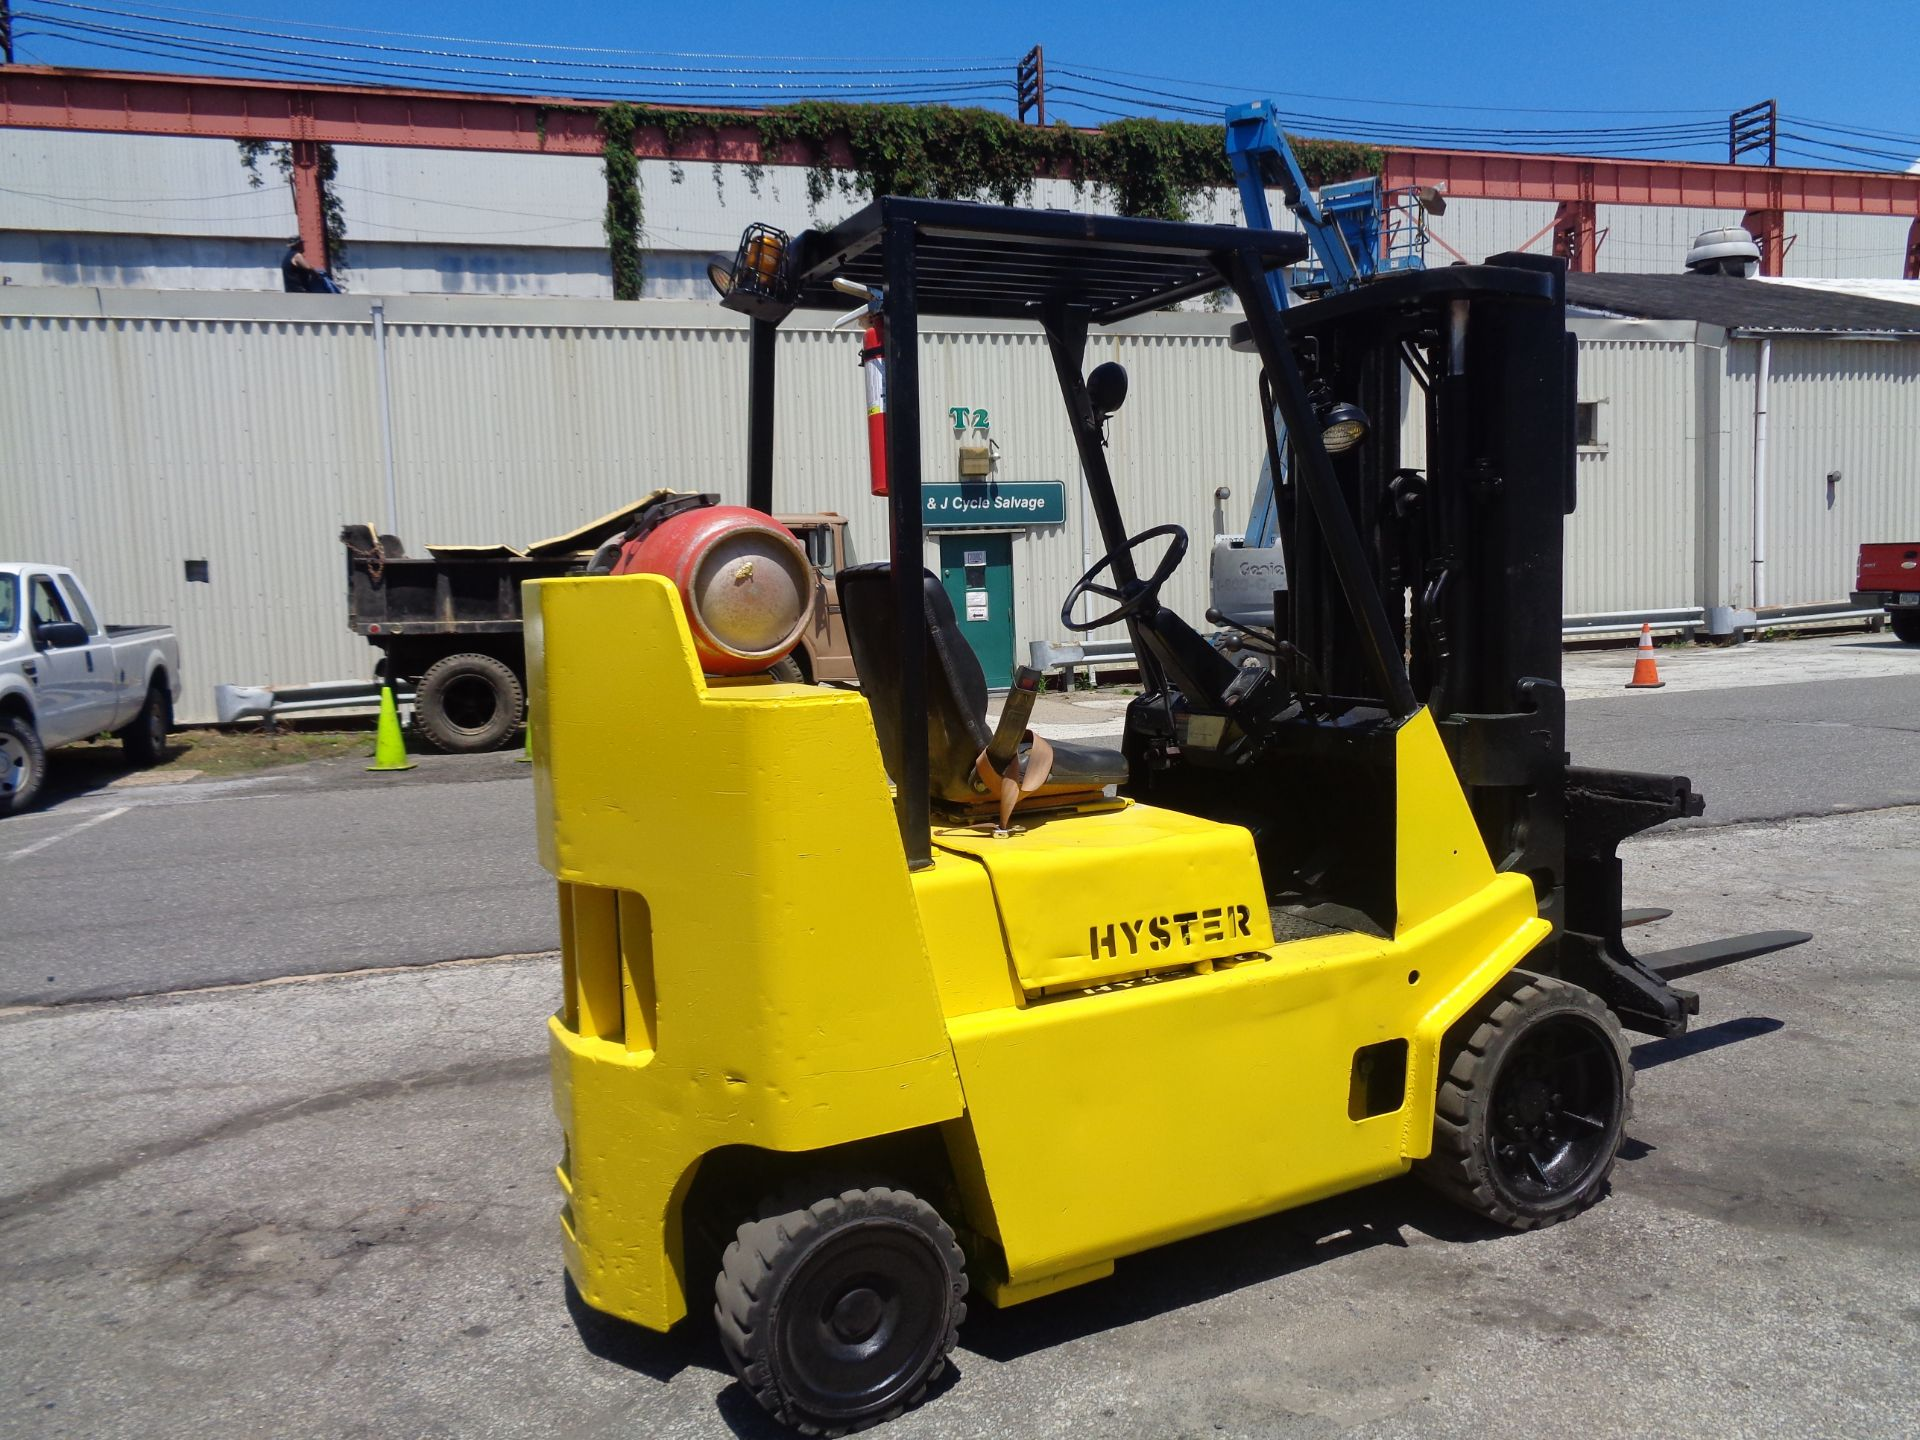 Hyster S80XL 8,000 lbs Forklift - Image 13 of 13